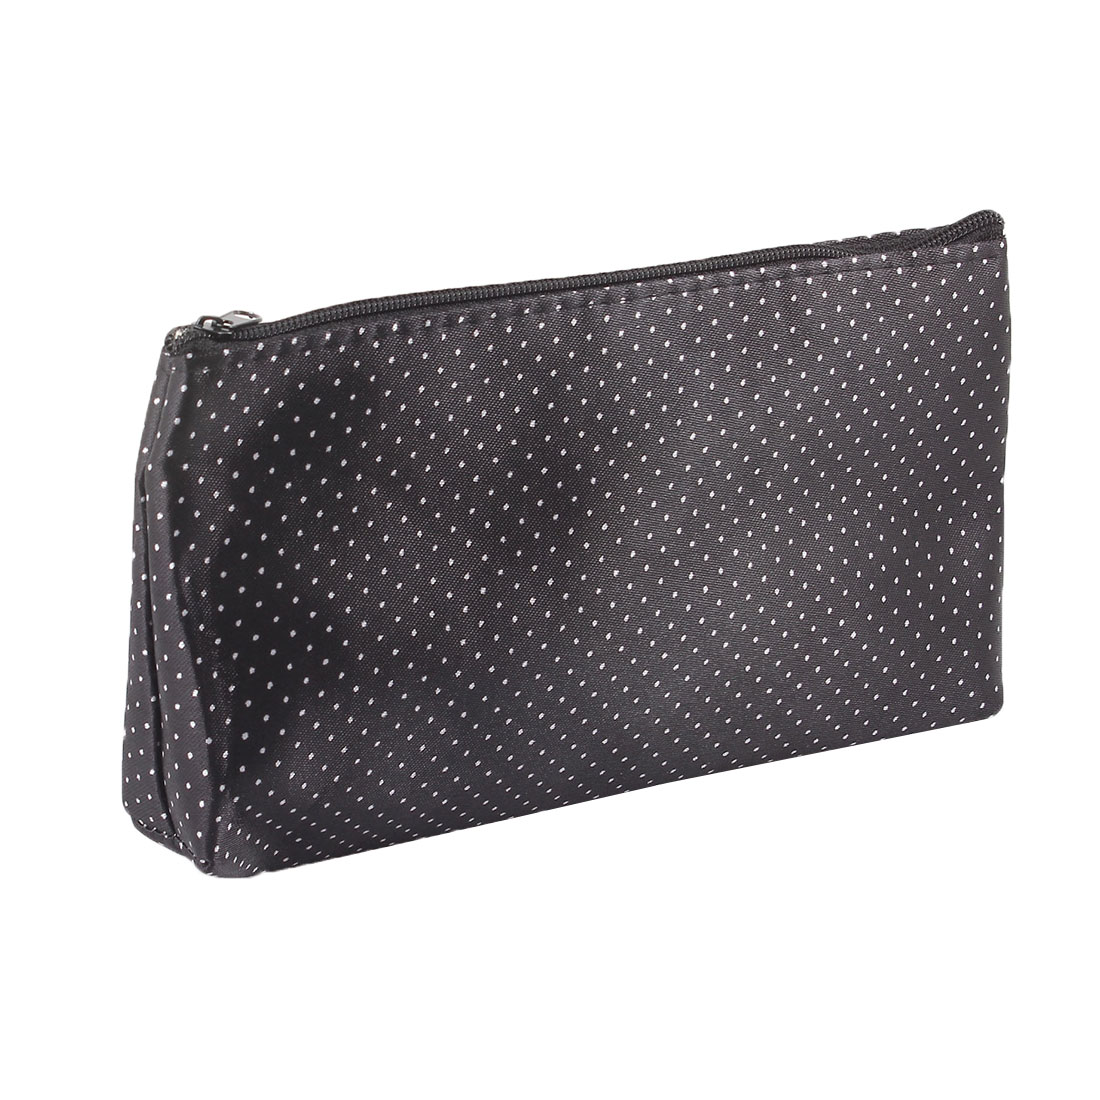 Lady White Polka Dot Print Black Zip Up Cosmetic Makeup Bag Case